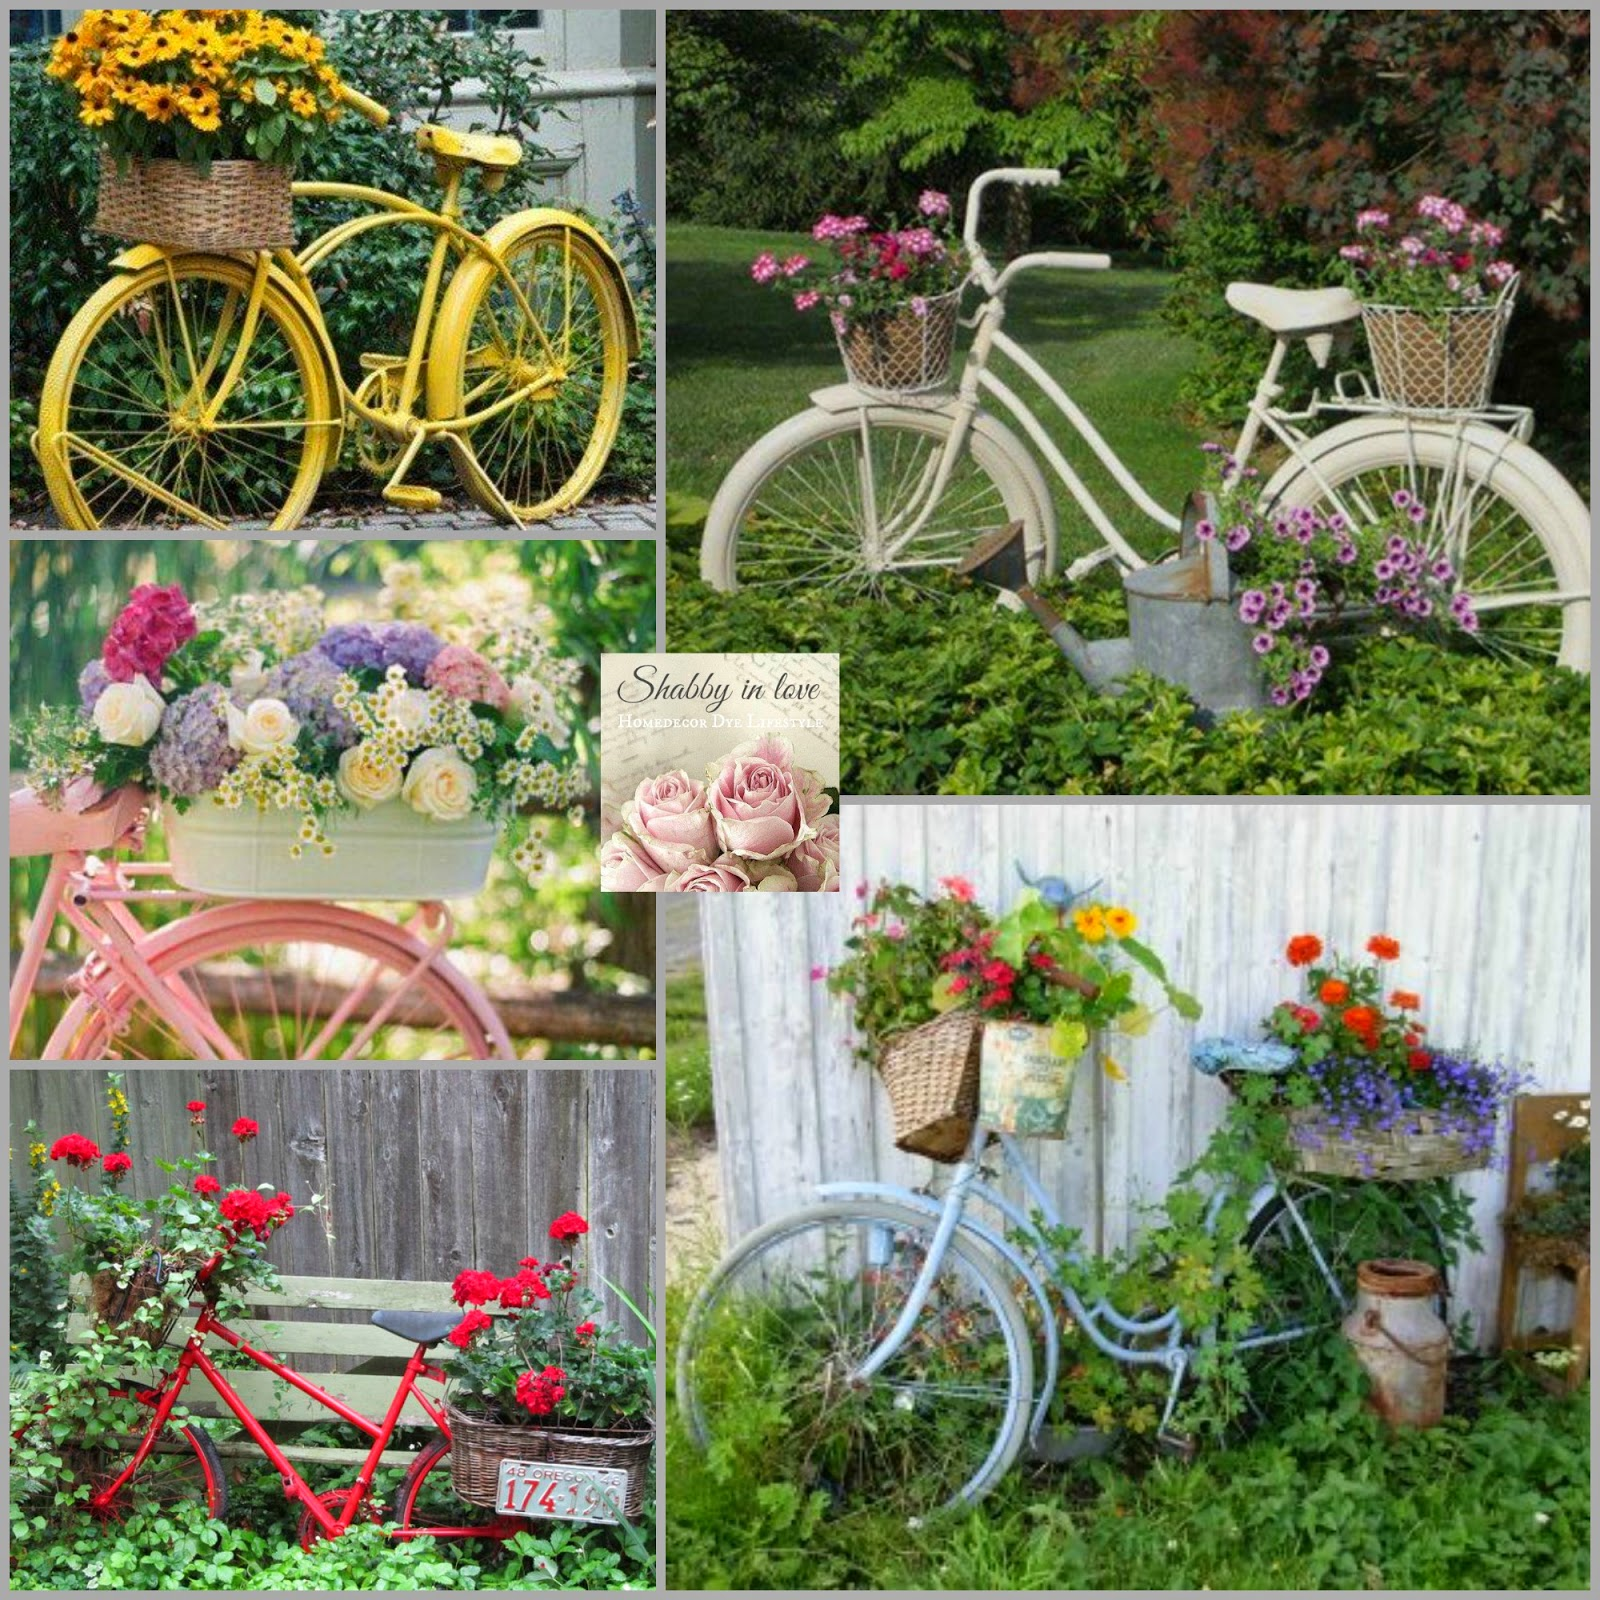 Shabby in love lovely garden container ideas for Garden decoration ideas